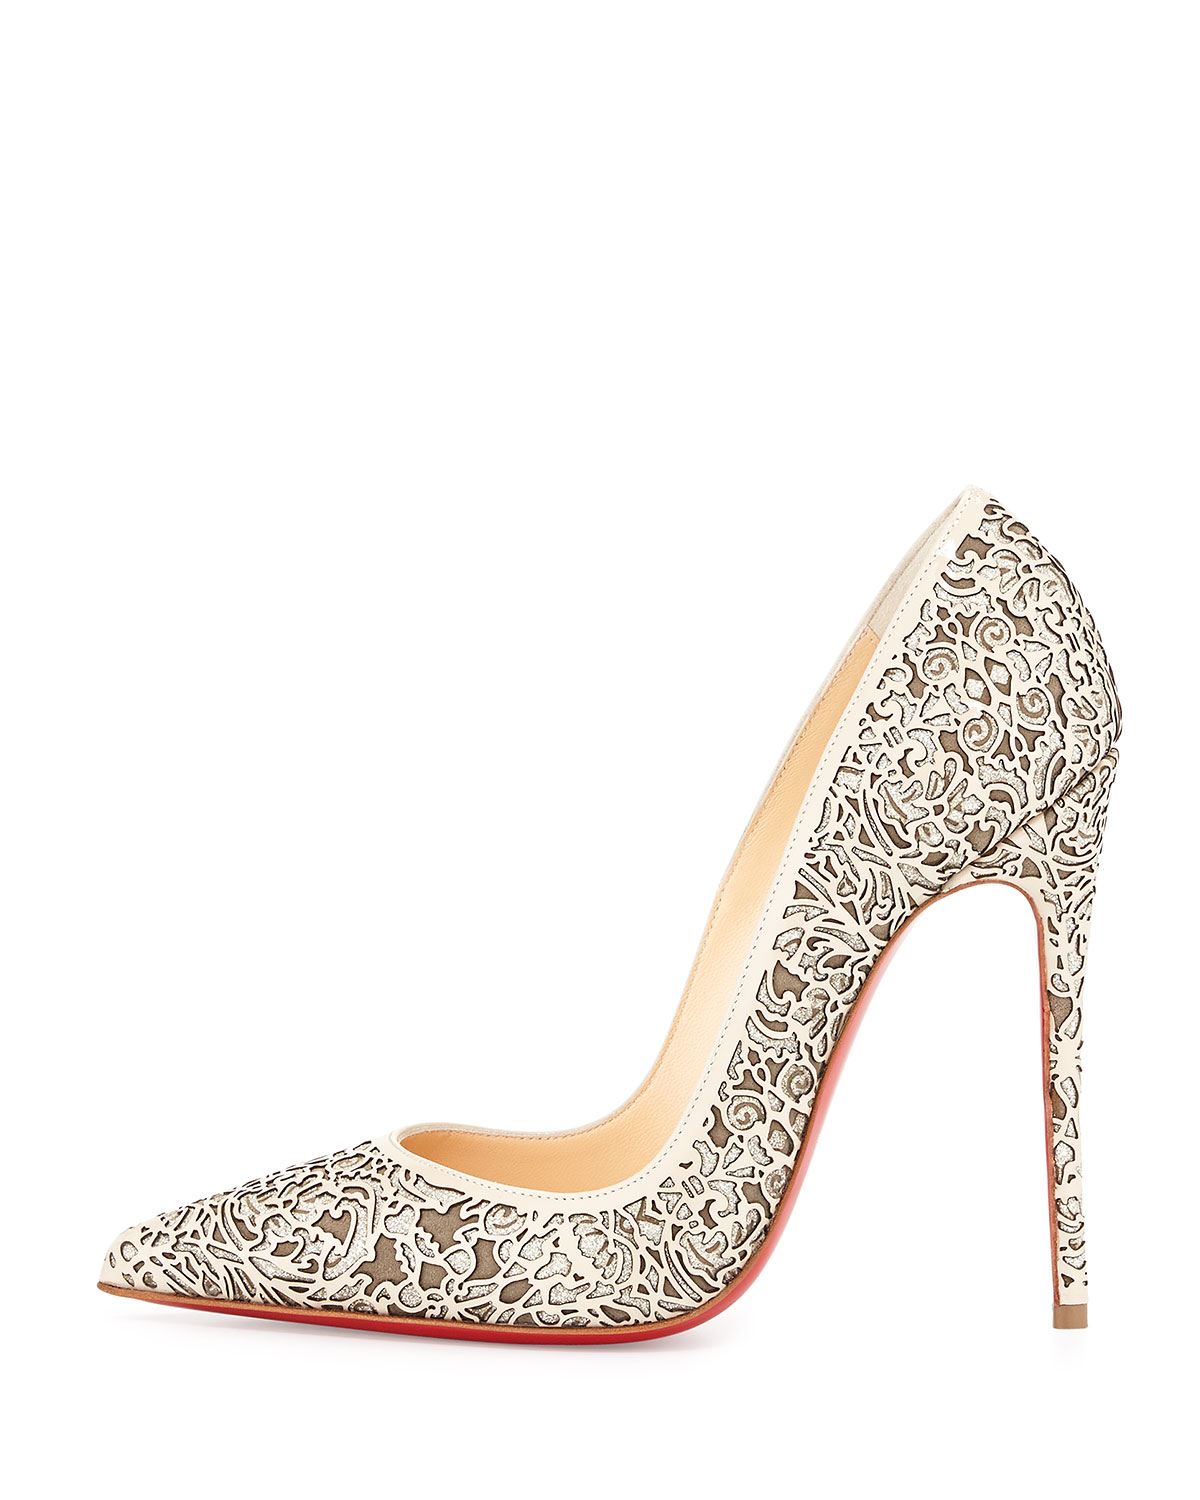 d459d8a1c6a9 Christian Louboutin Bianca Patent 120mm Leather Pumps – approx. R12